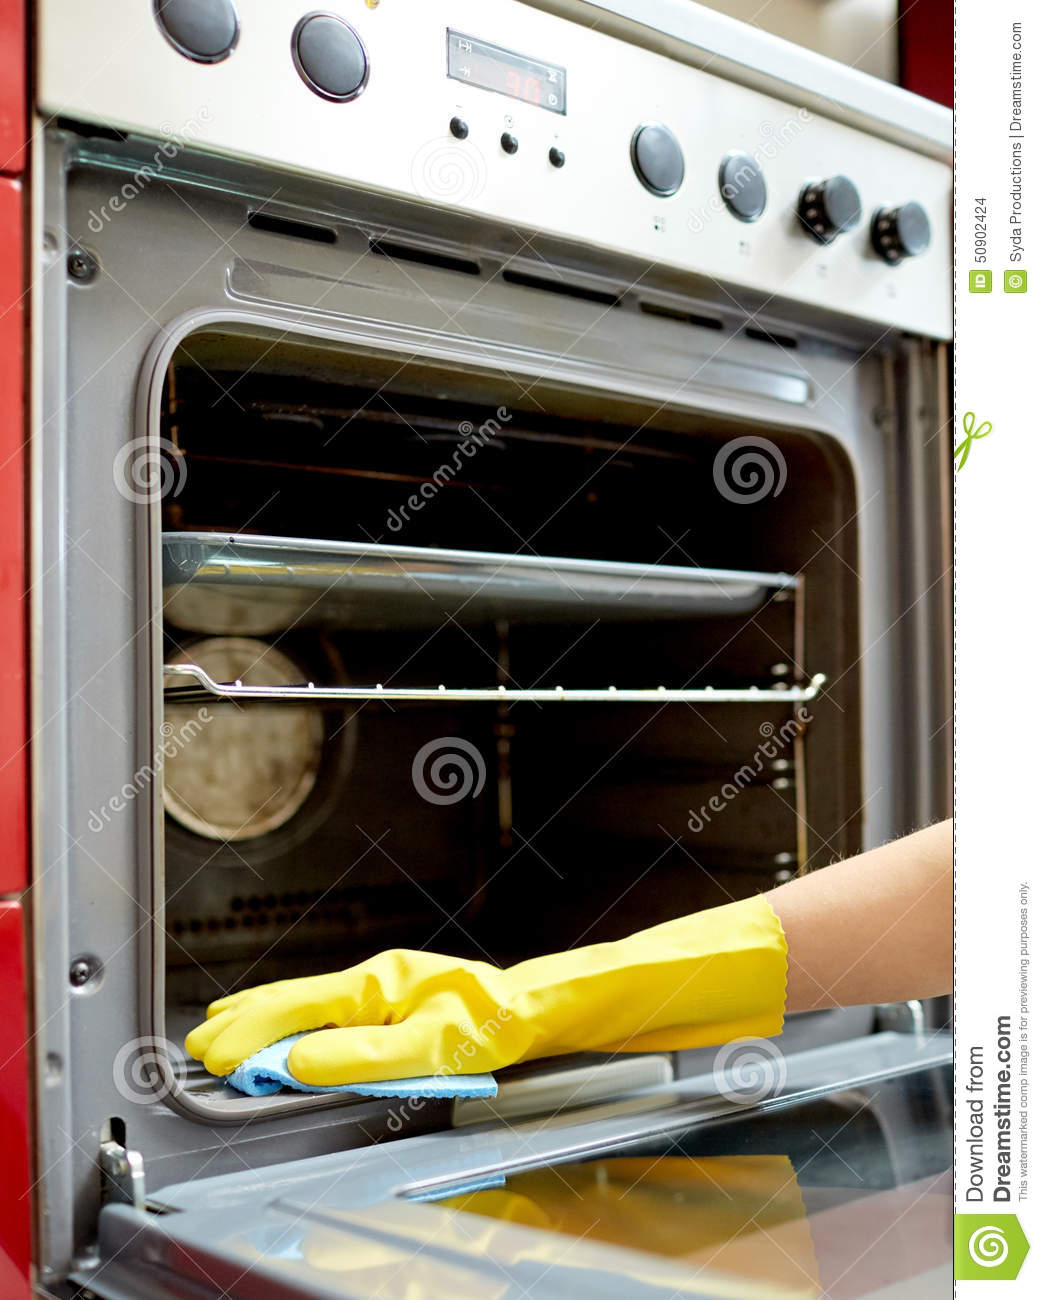 People Cleaning Kitchen: Close Up Of Woman Cleaning Oven At Home Kitchen Stock